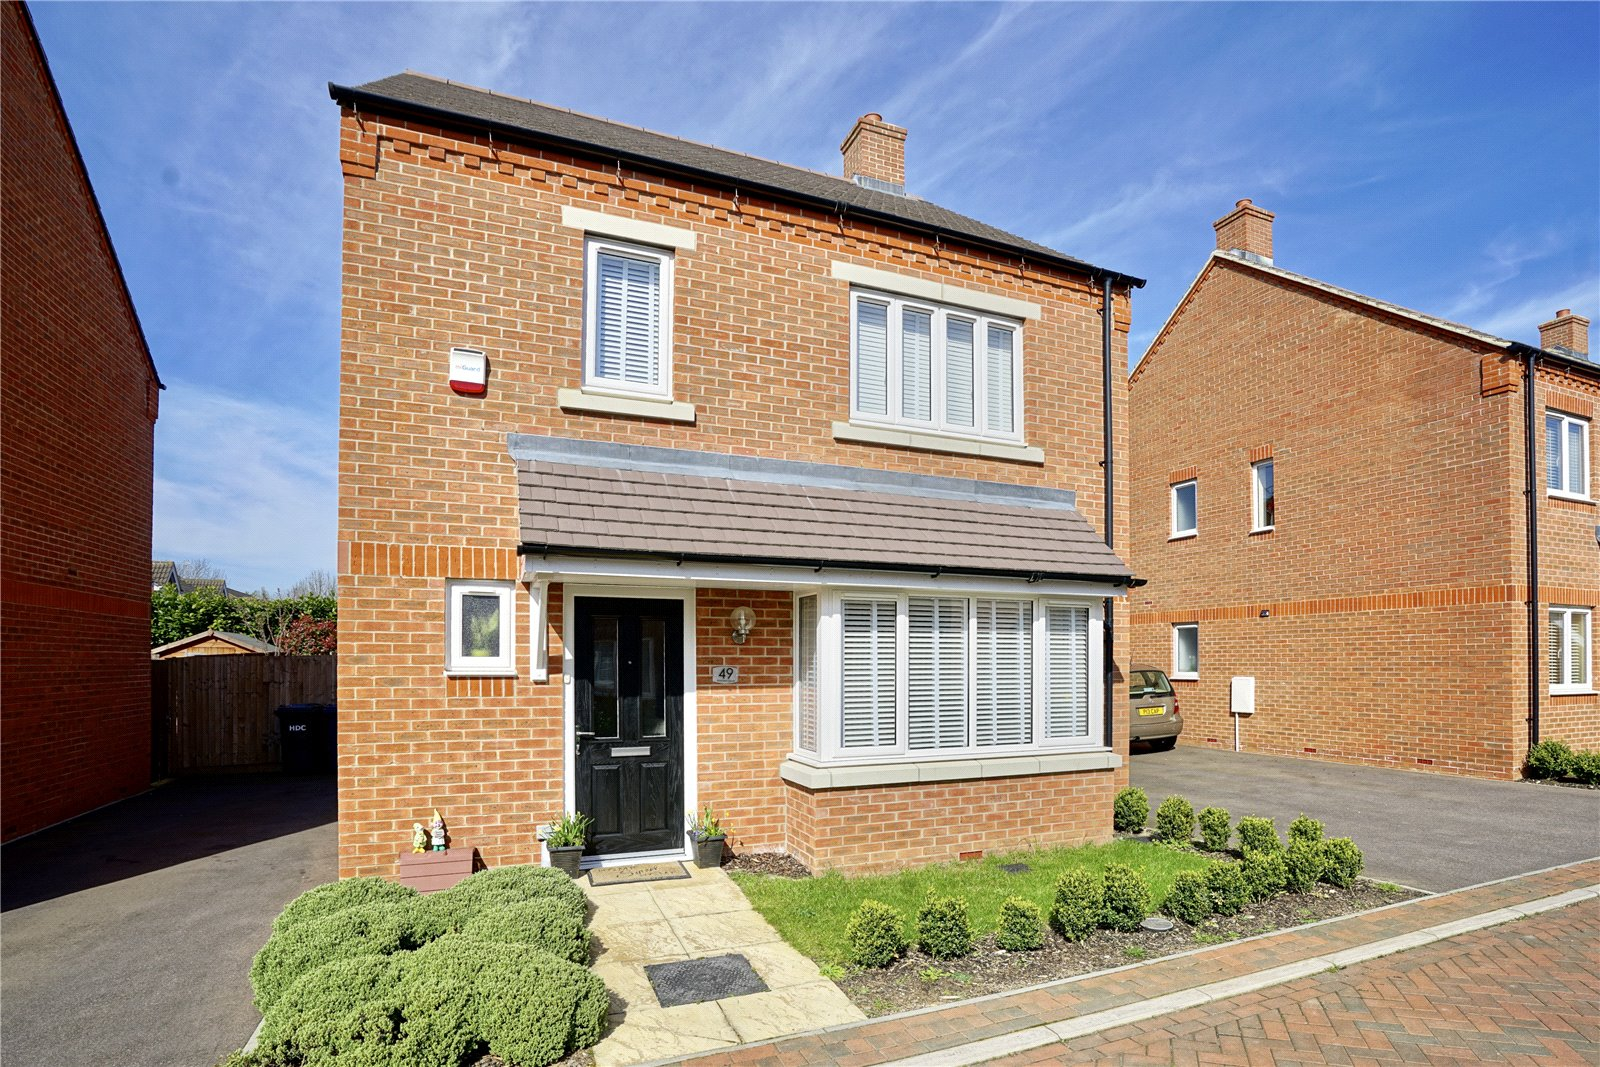 4 bed house for sale in Whinfell Close, Eaton Socon  - Property Image 1